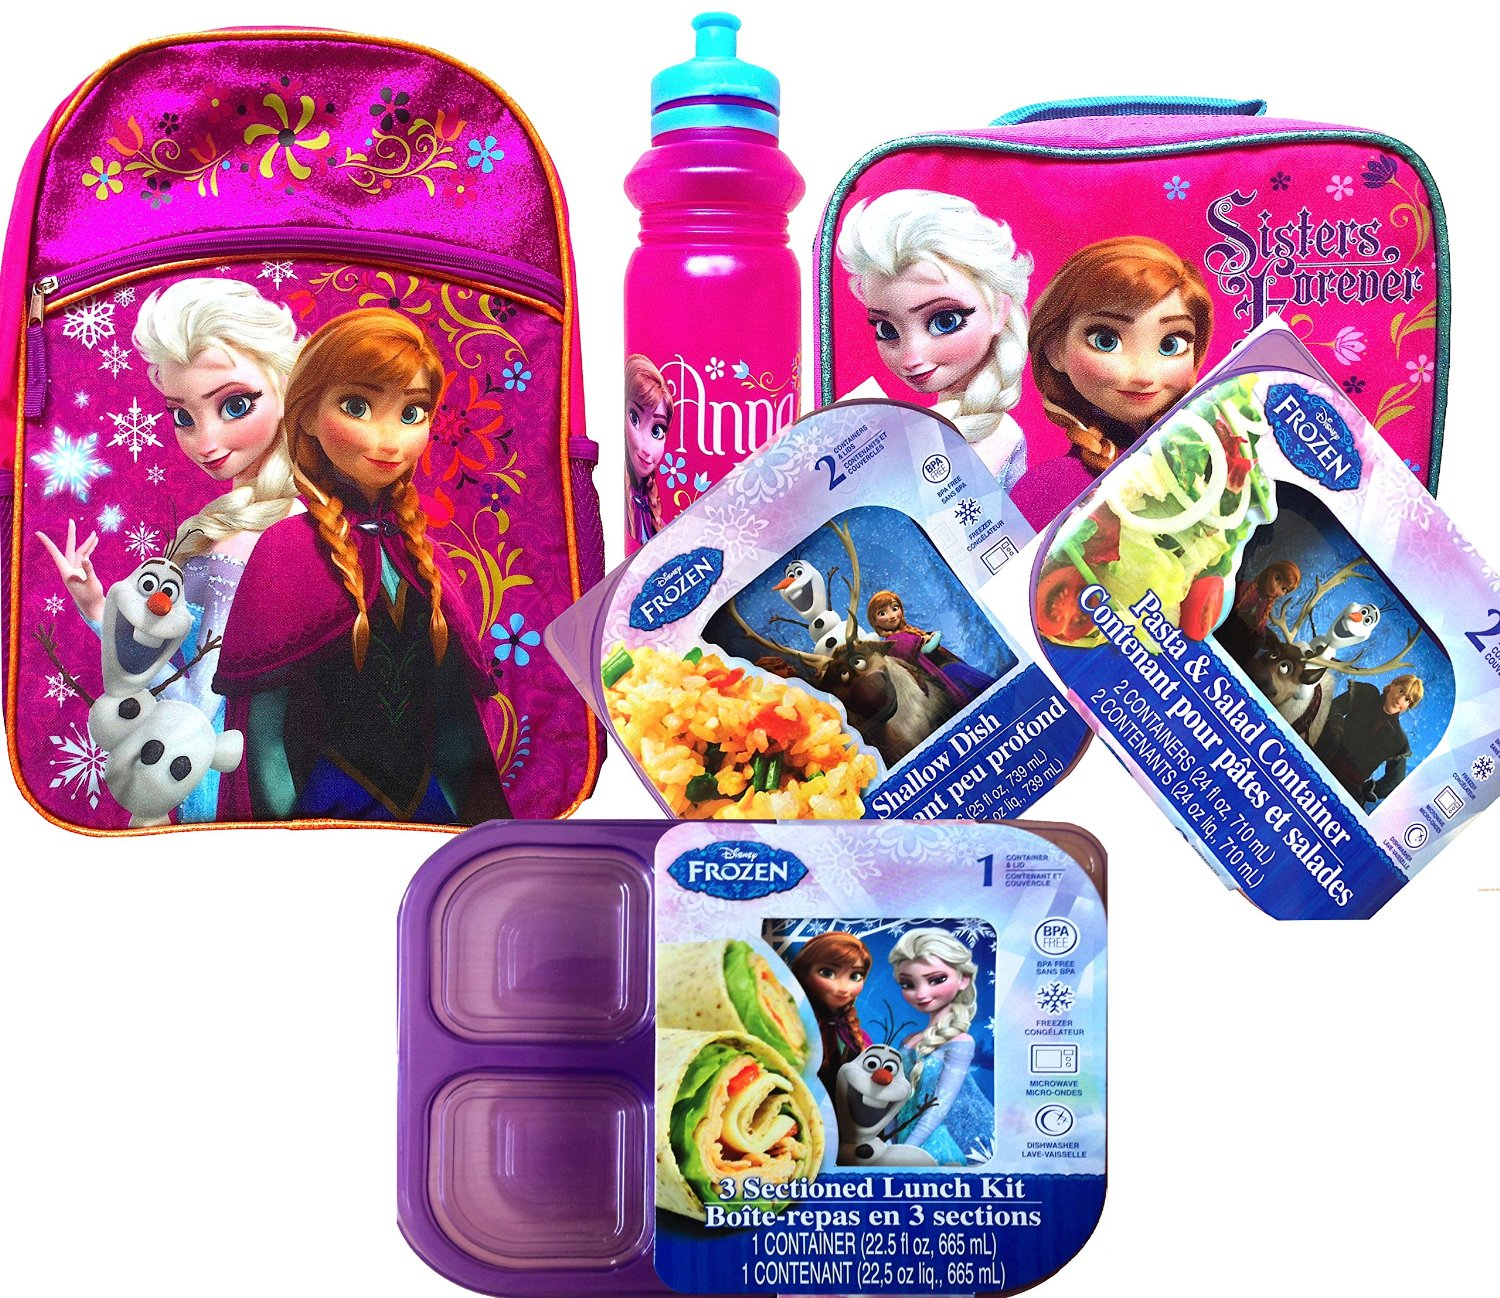 Disney Frozen Back to School Backpack with Frozen Children's Lunch Box Includes Pull-top Water Bottle,3 Sectioned Lunch Kit Container, Pack of 2 Containers for Pasta & Salad Container, Pack of 2 Shallow Dish Containers All with Lids.